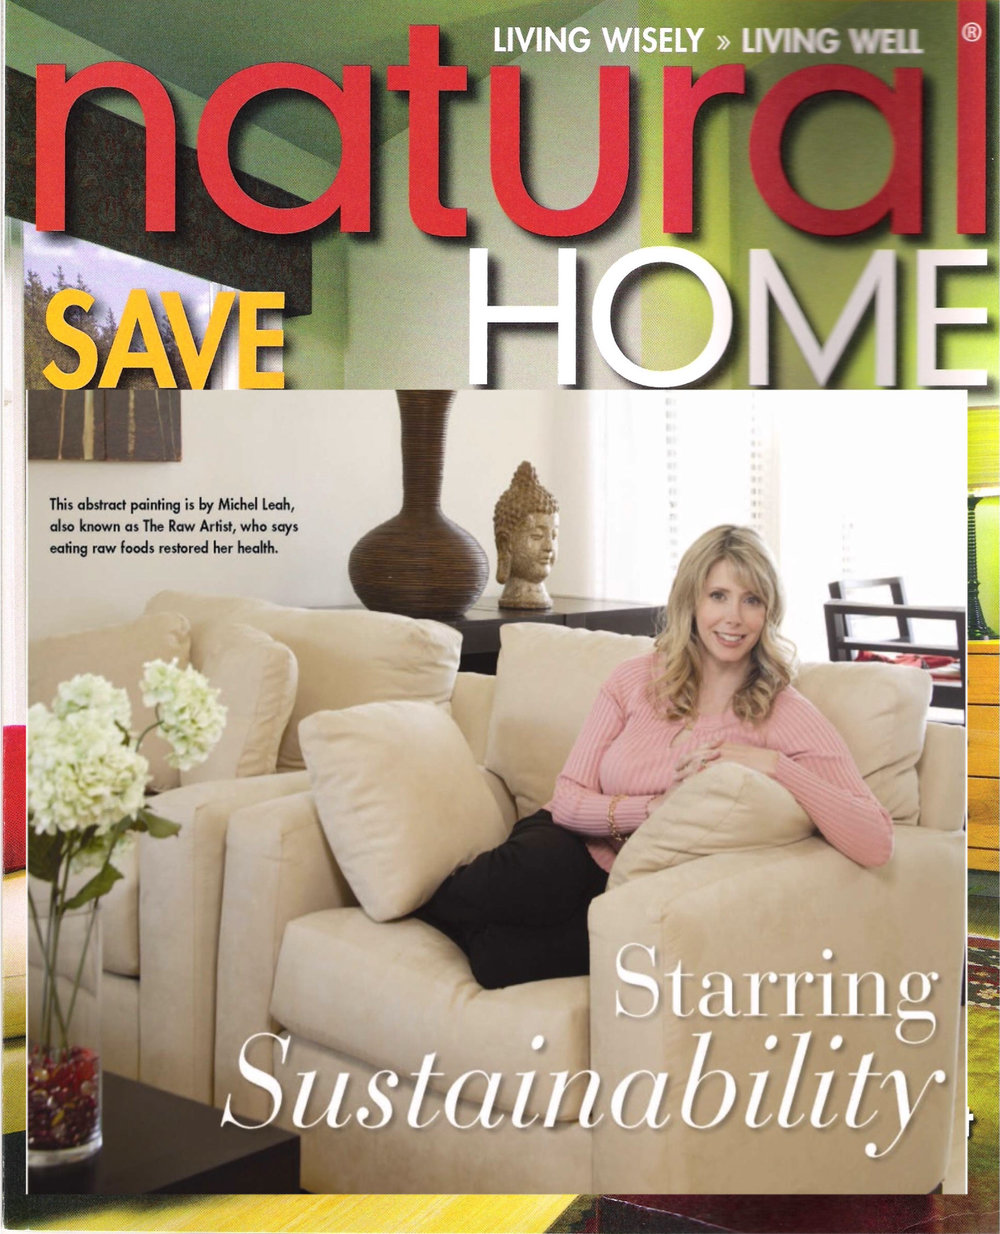 Alive & Well TV Host Michelle Harris in Natural Home Magazine - Be Green!